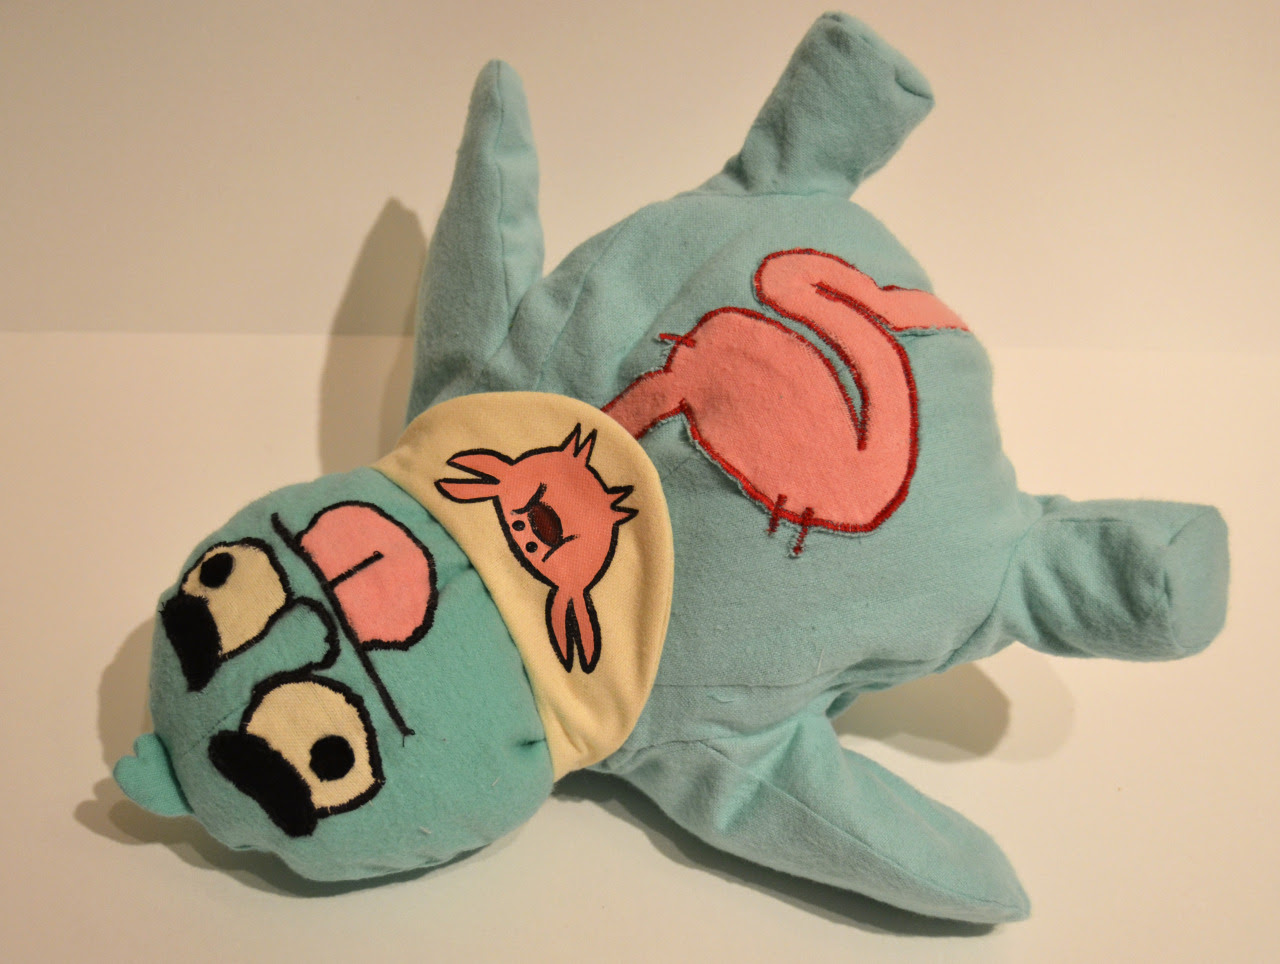 Finished the Mr. Queasy plush! I'm not going to be making any more of these They're obnoxiously difficult for something so simple